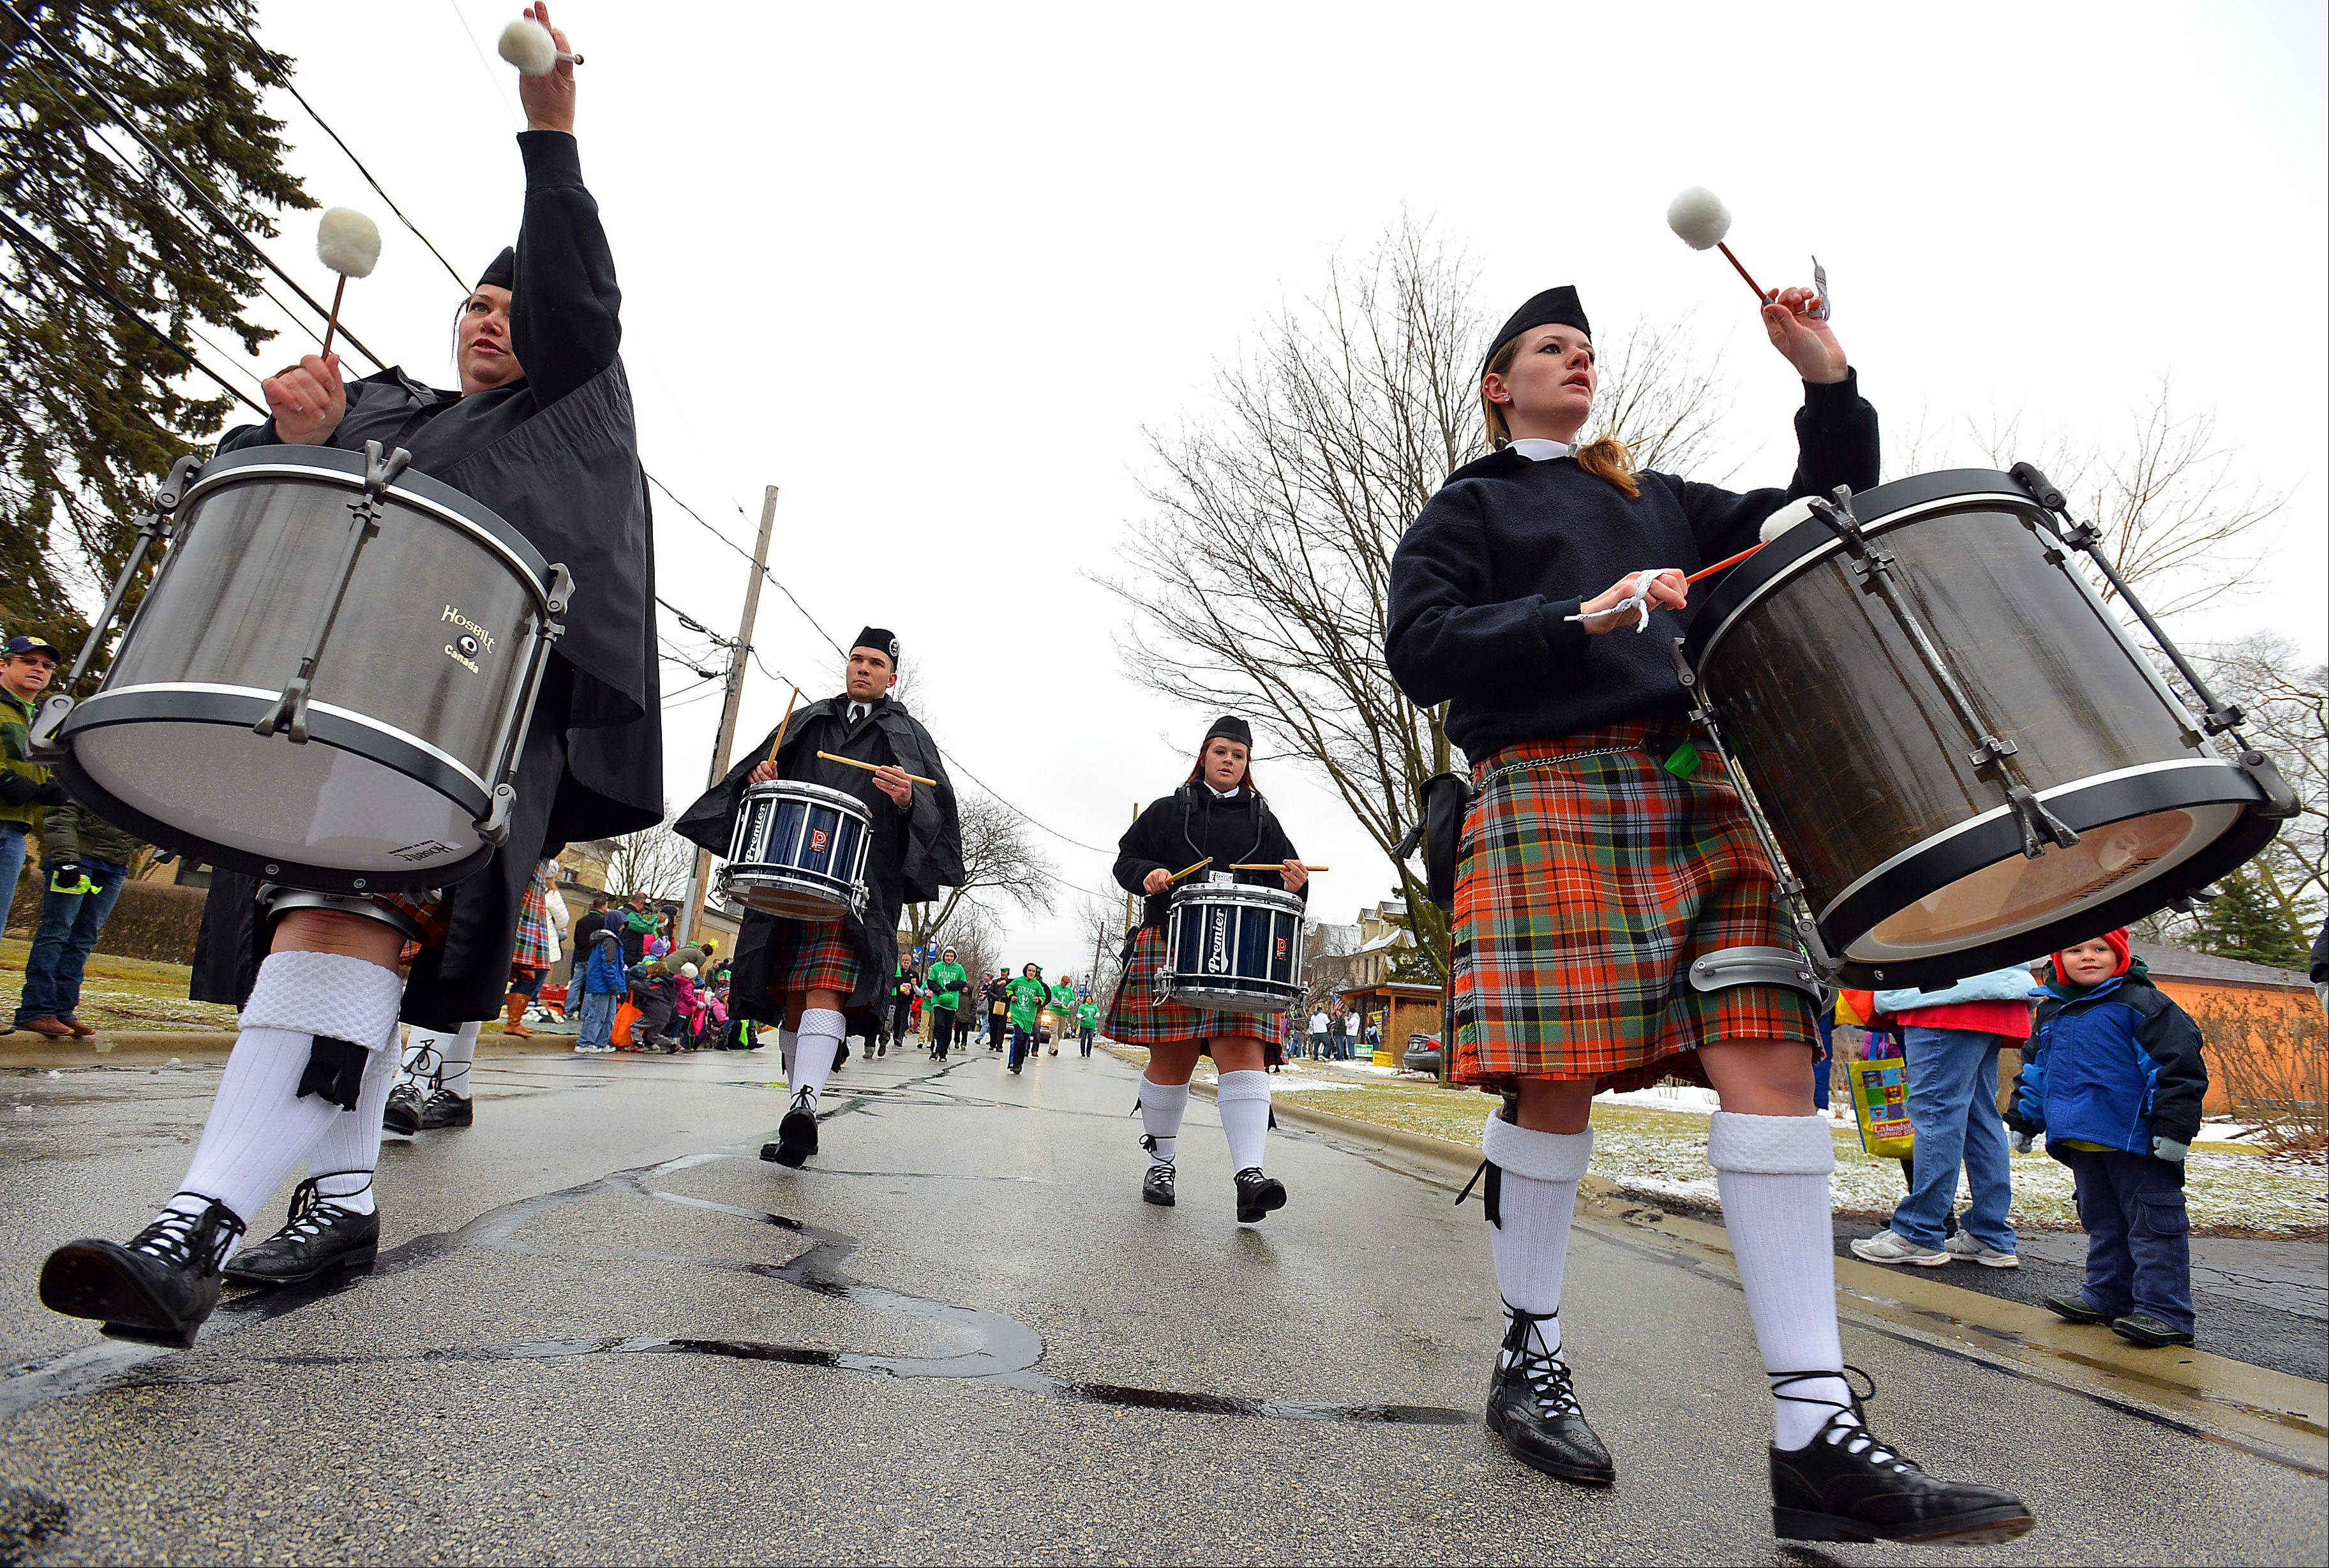 Despite the cold and the snow showers, the Midlothian Pipe Band of Lake Zurich entertained the audience during Saturday's St. Patrick's Day parade in Palatine.